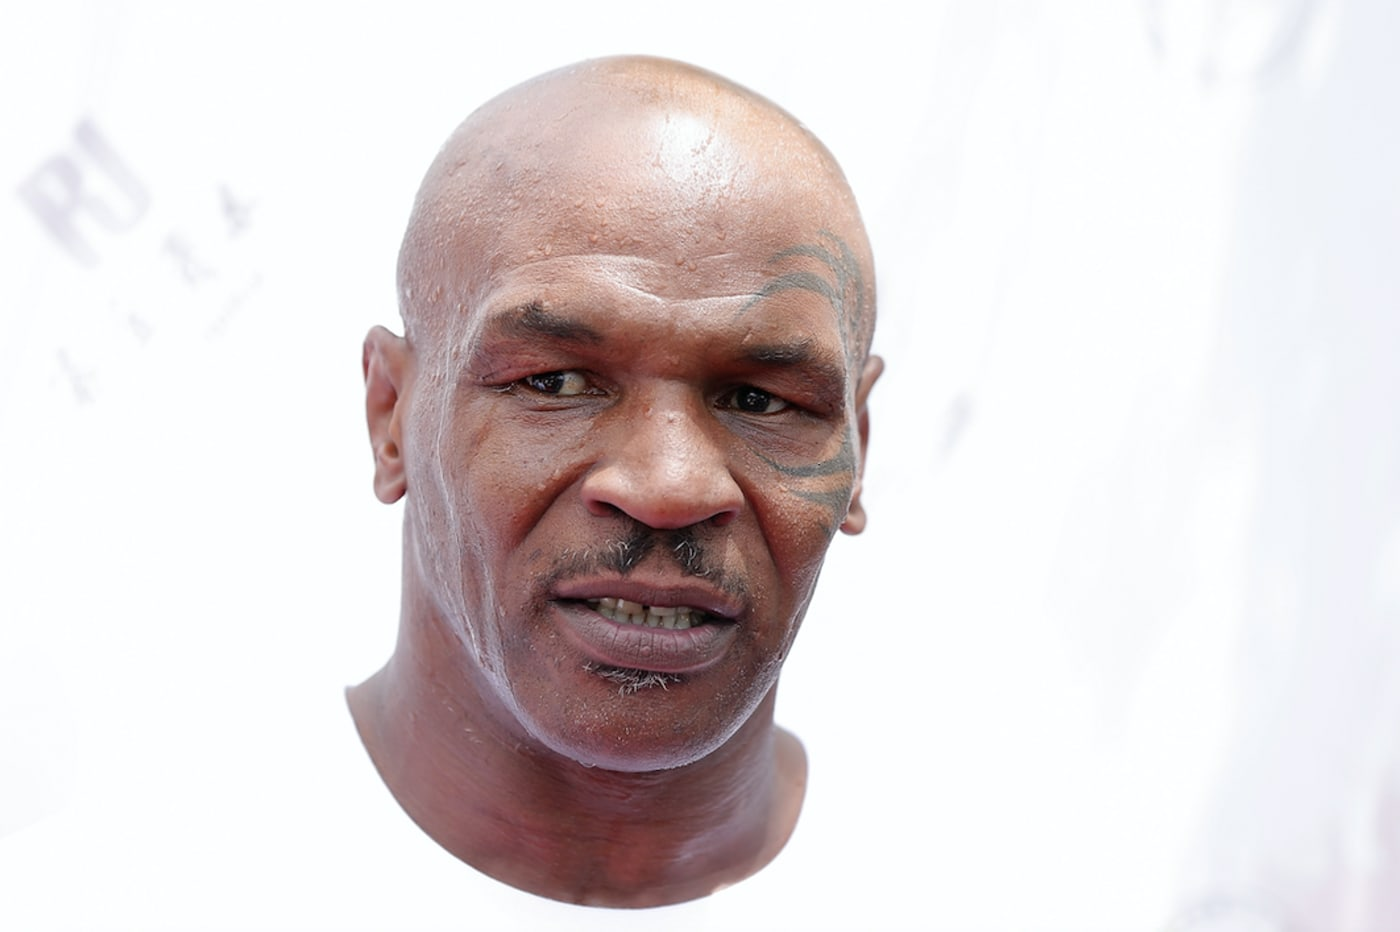 didnt know mike tyson seven prostitutes